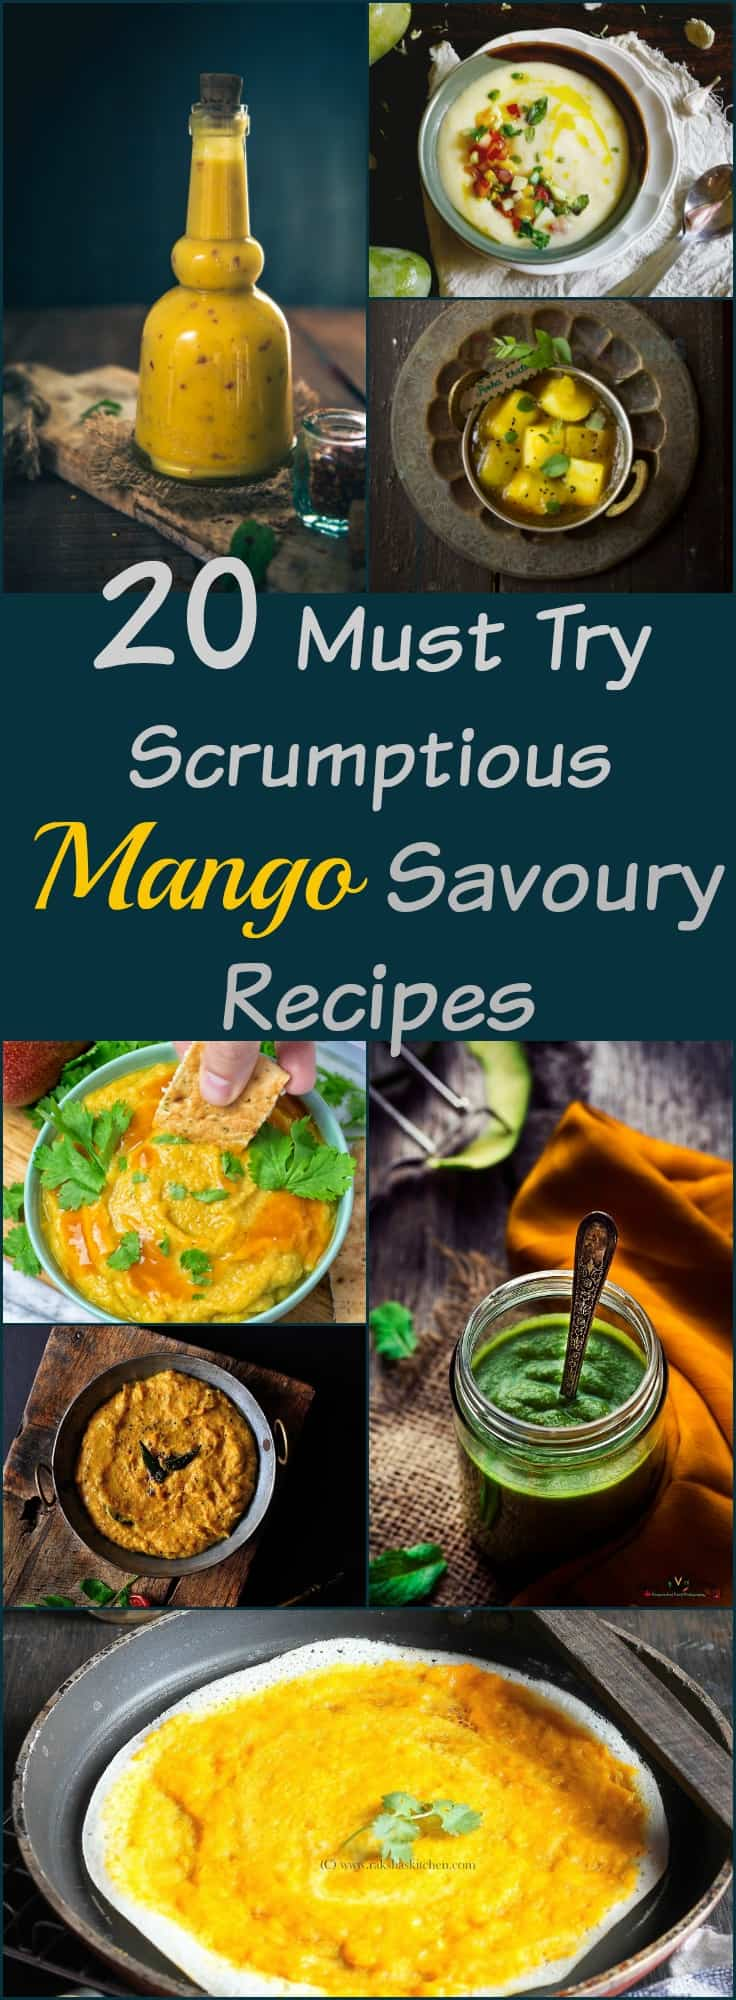 Must Try Scrumptious Mango Savoury Recipes mango recipes round up post desserts included mango desserts